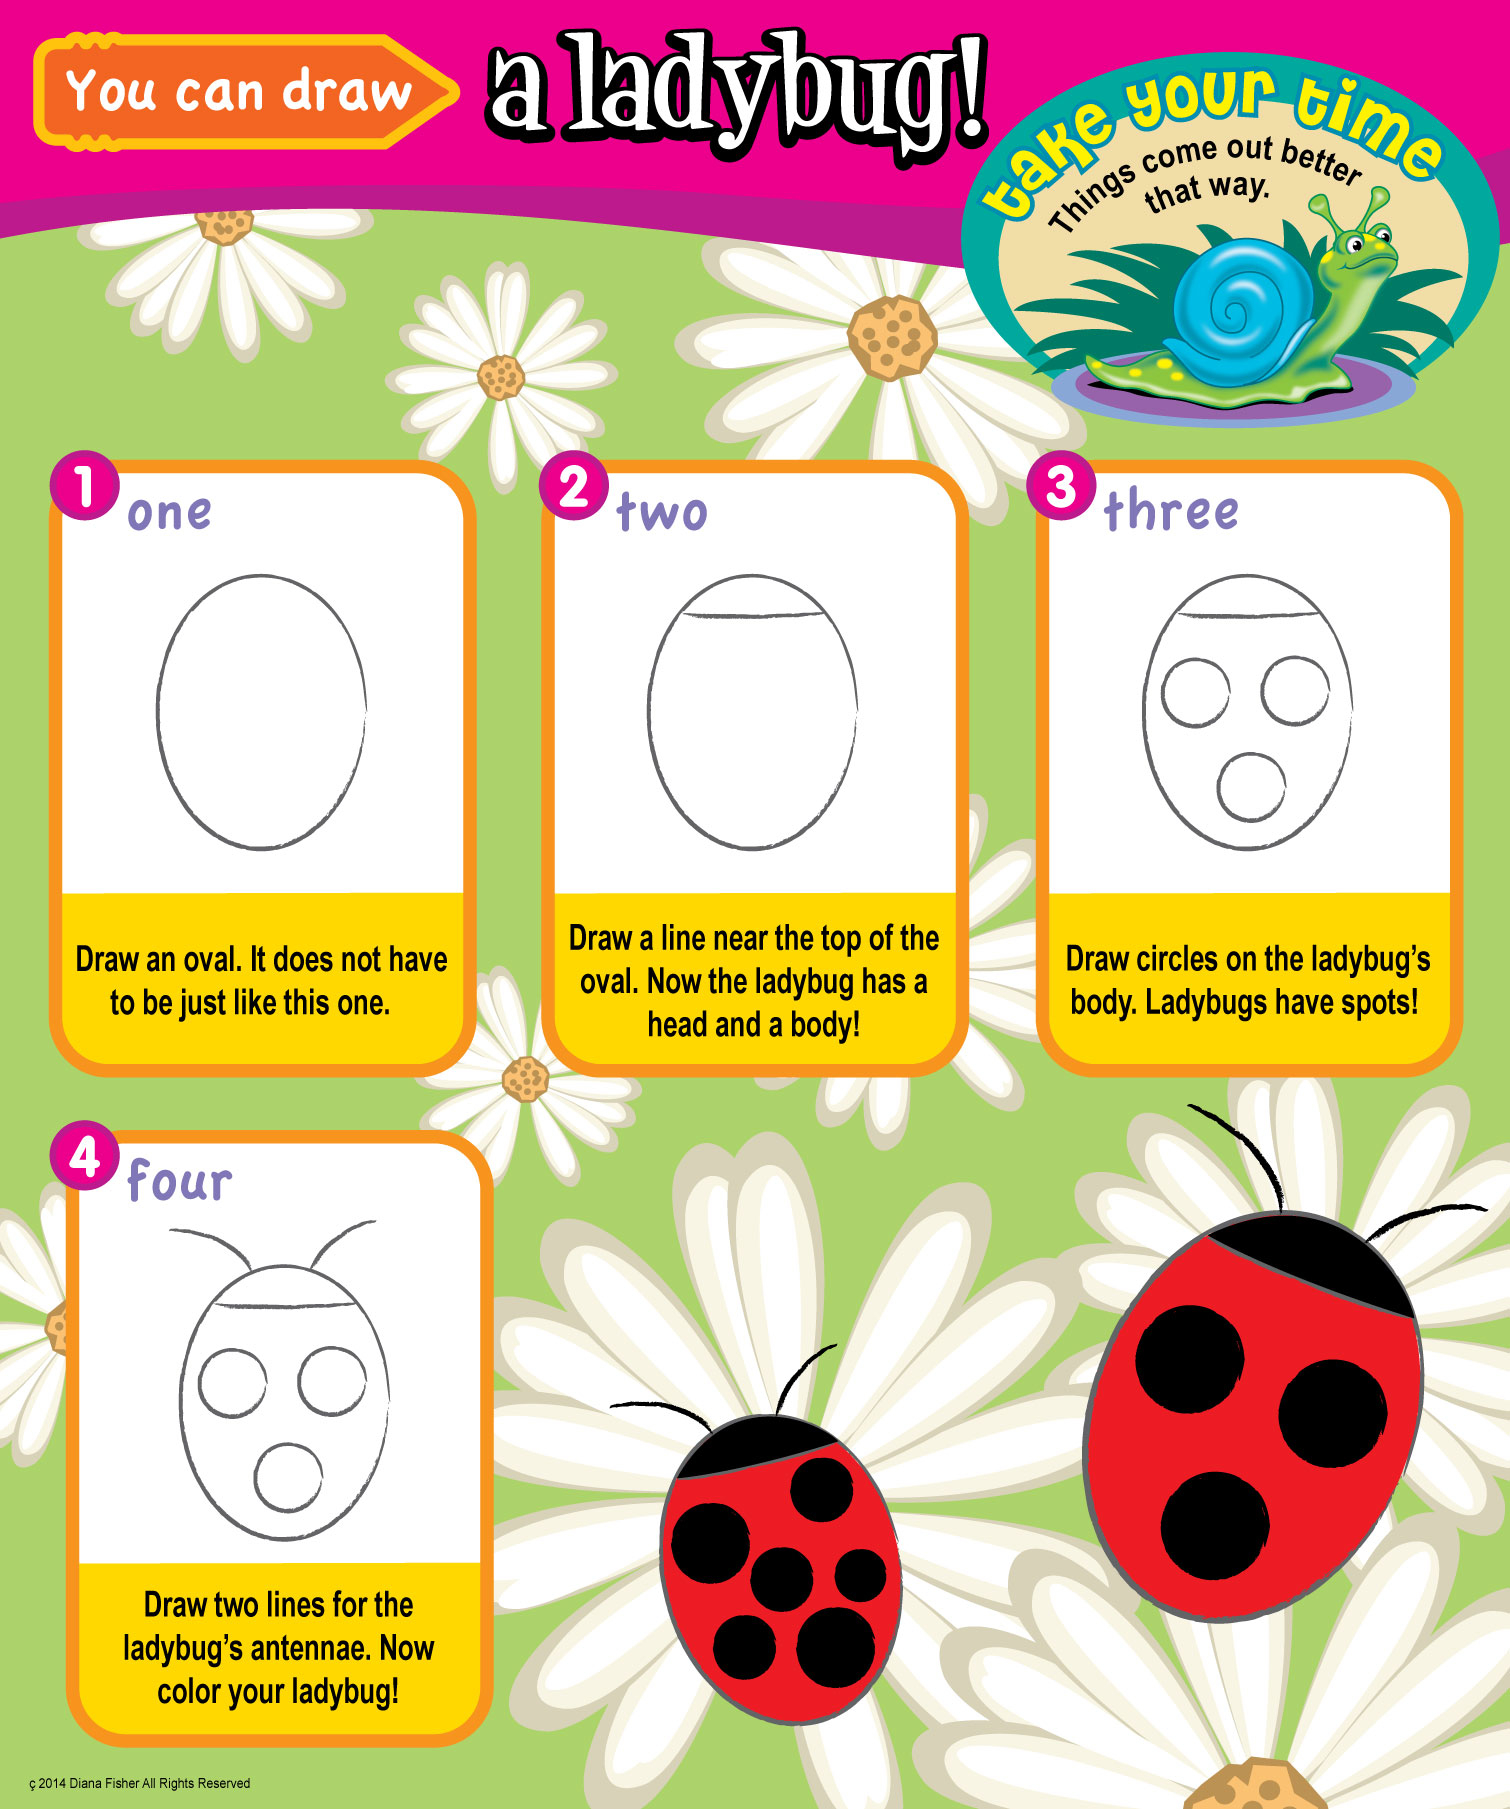 step by step instructions for how to draw a ladybug for kids